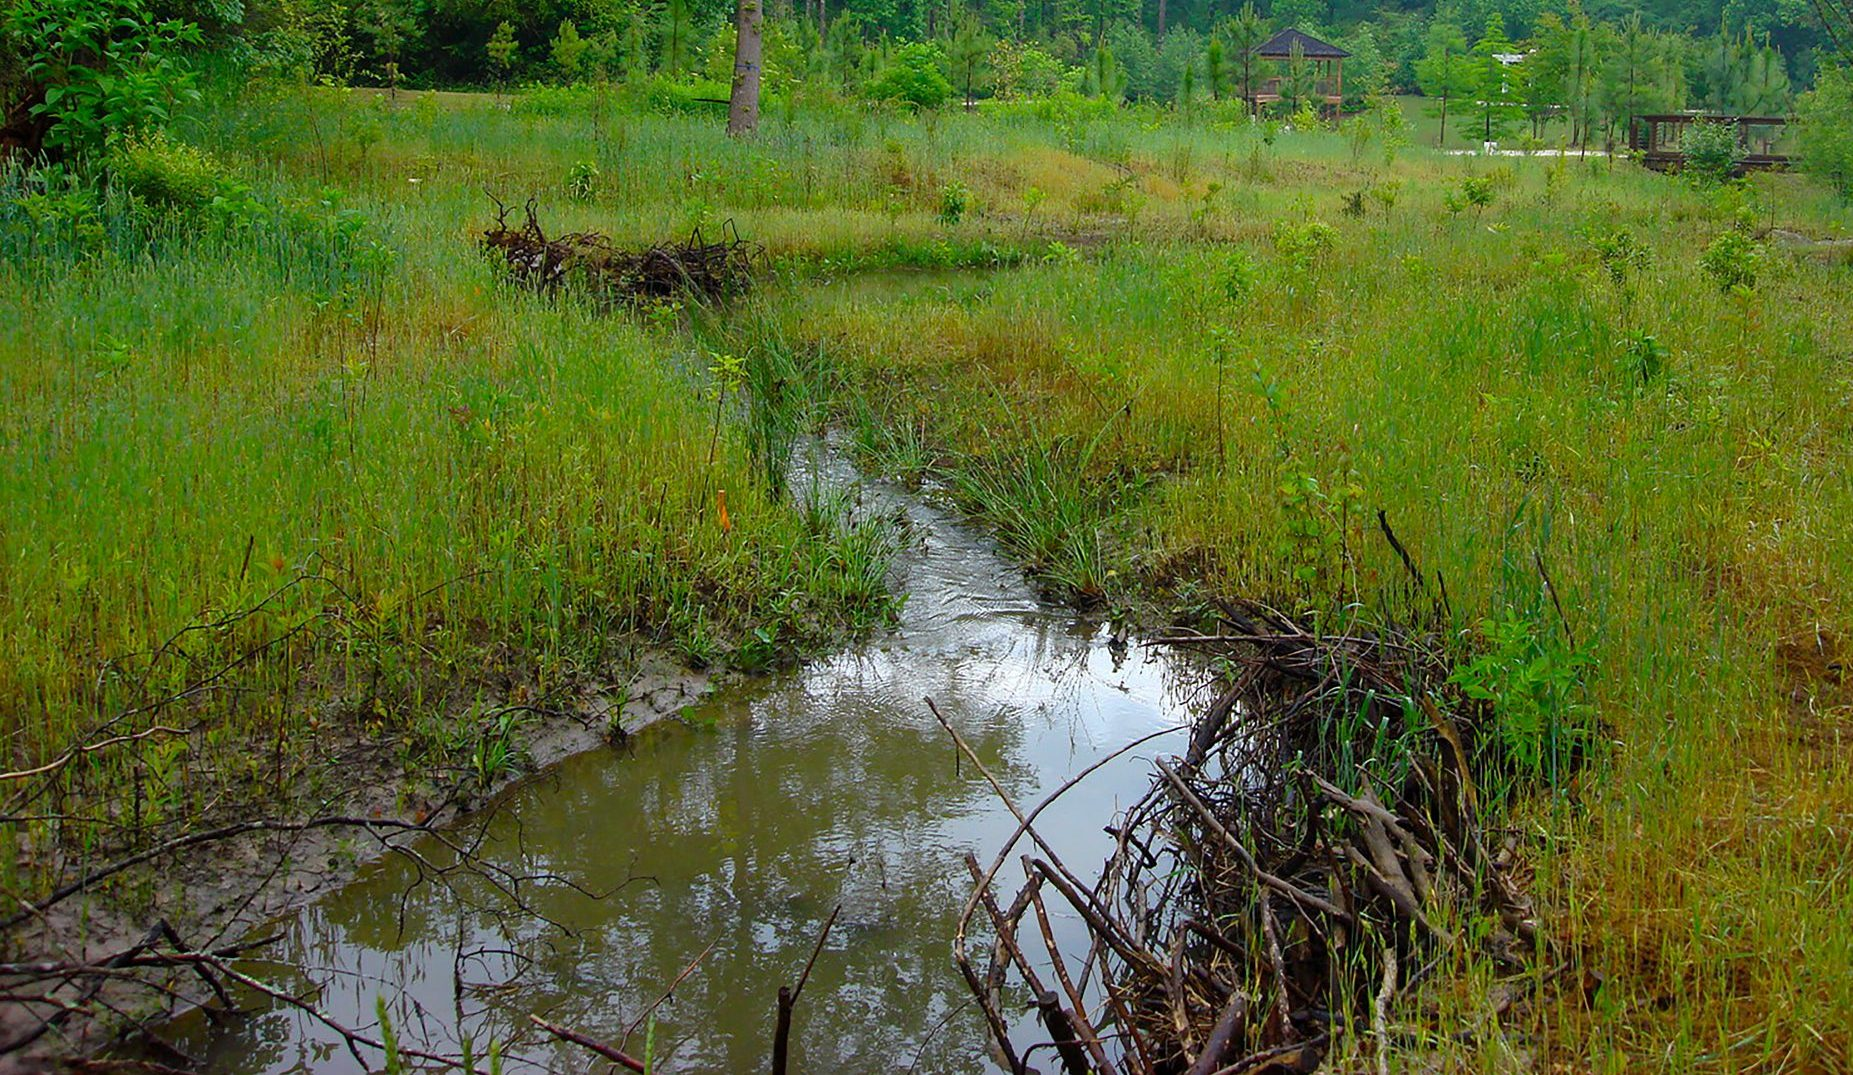 view of stream and wetlands